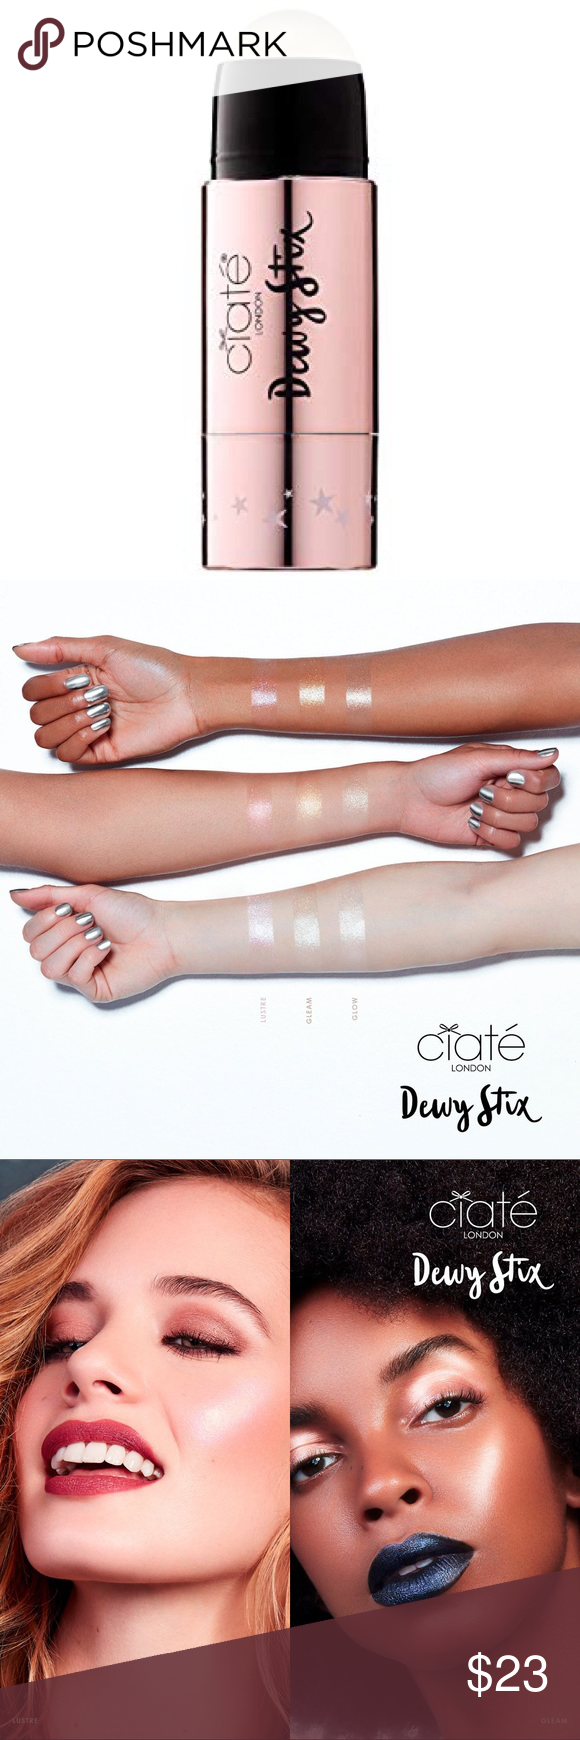 Ciaté London Dewy Stix Luminous Highlighting Balm Ciate